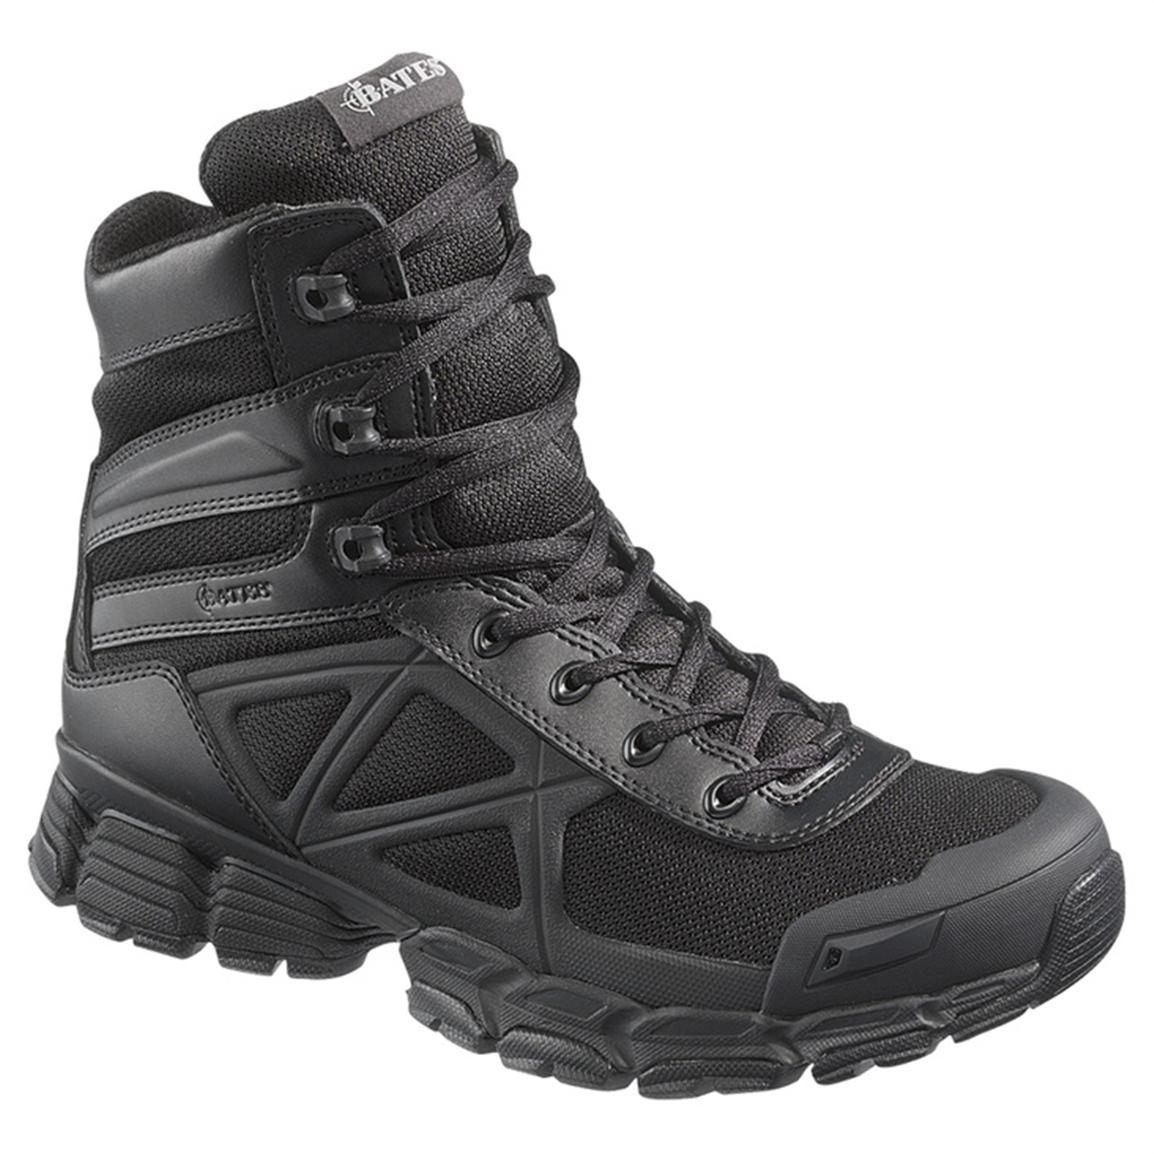 Men's Bates® Velocitor Boots, Black